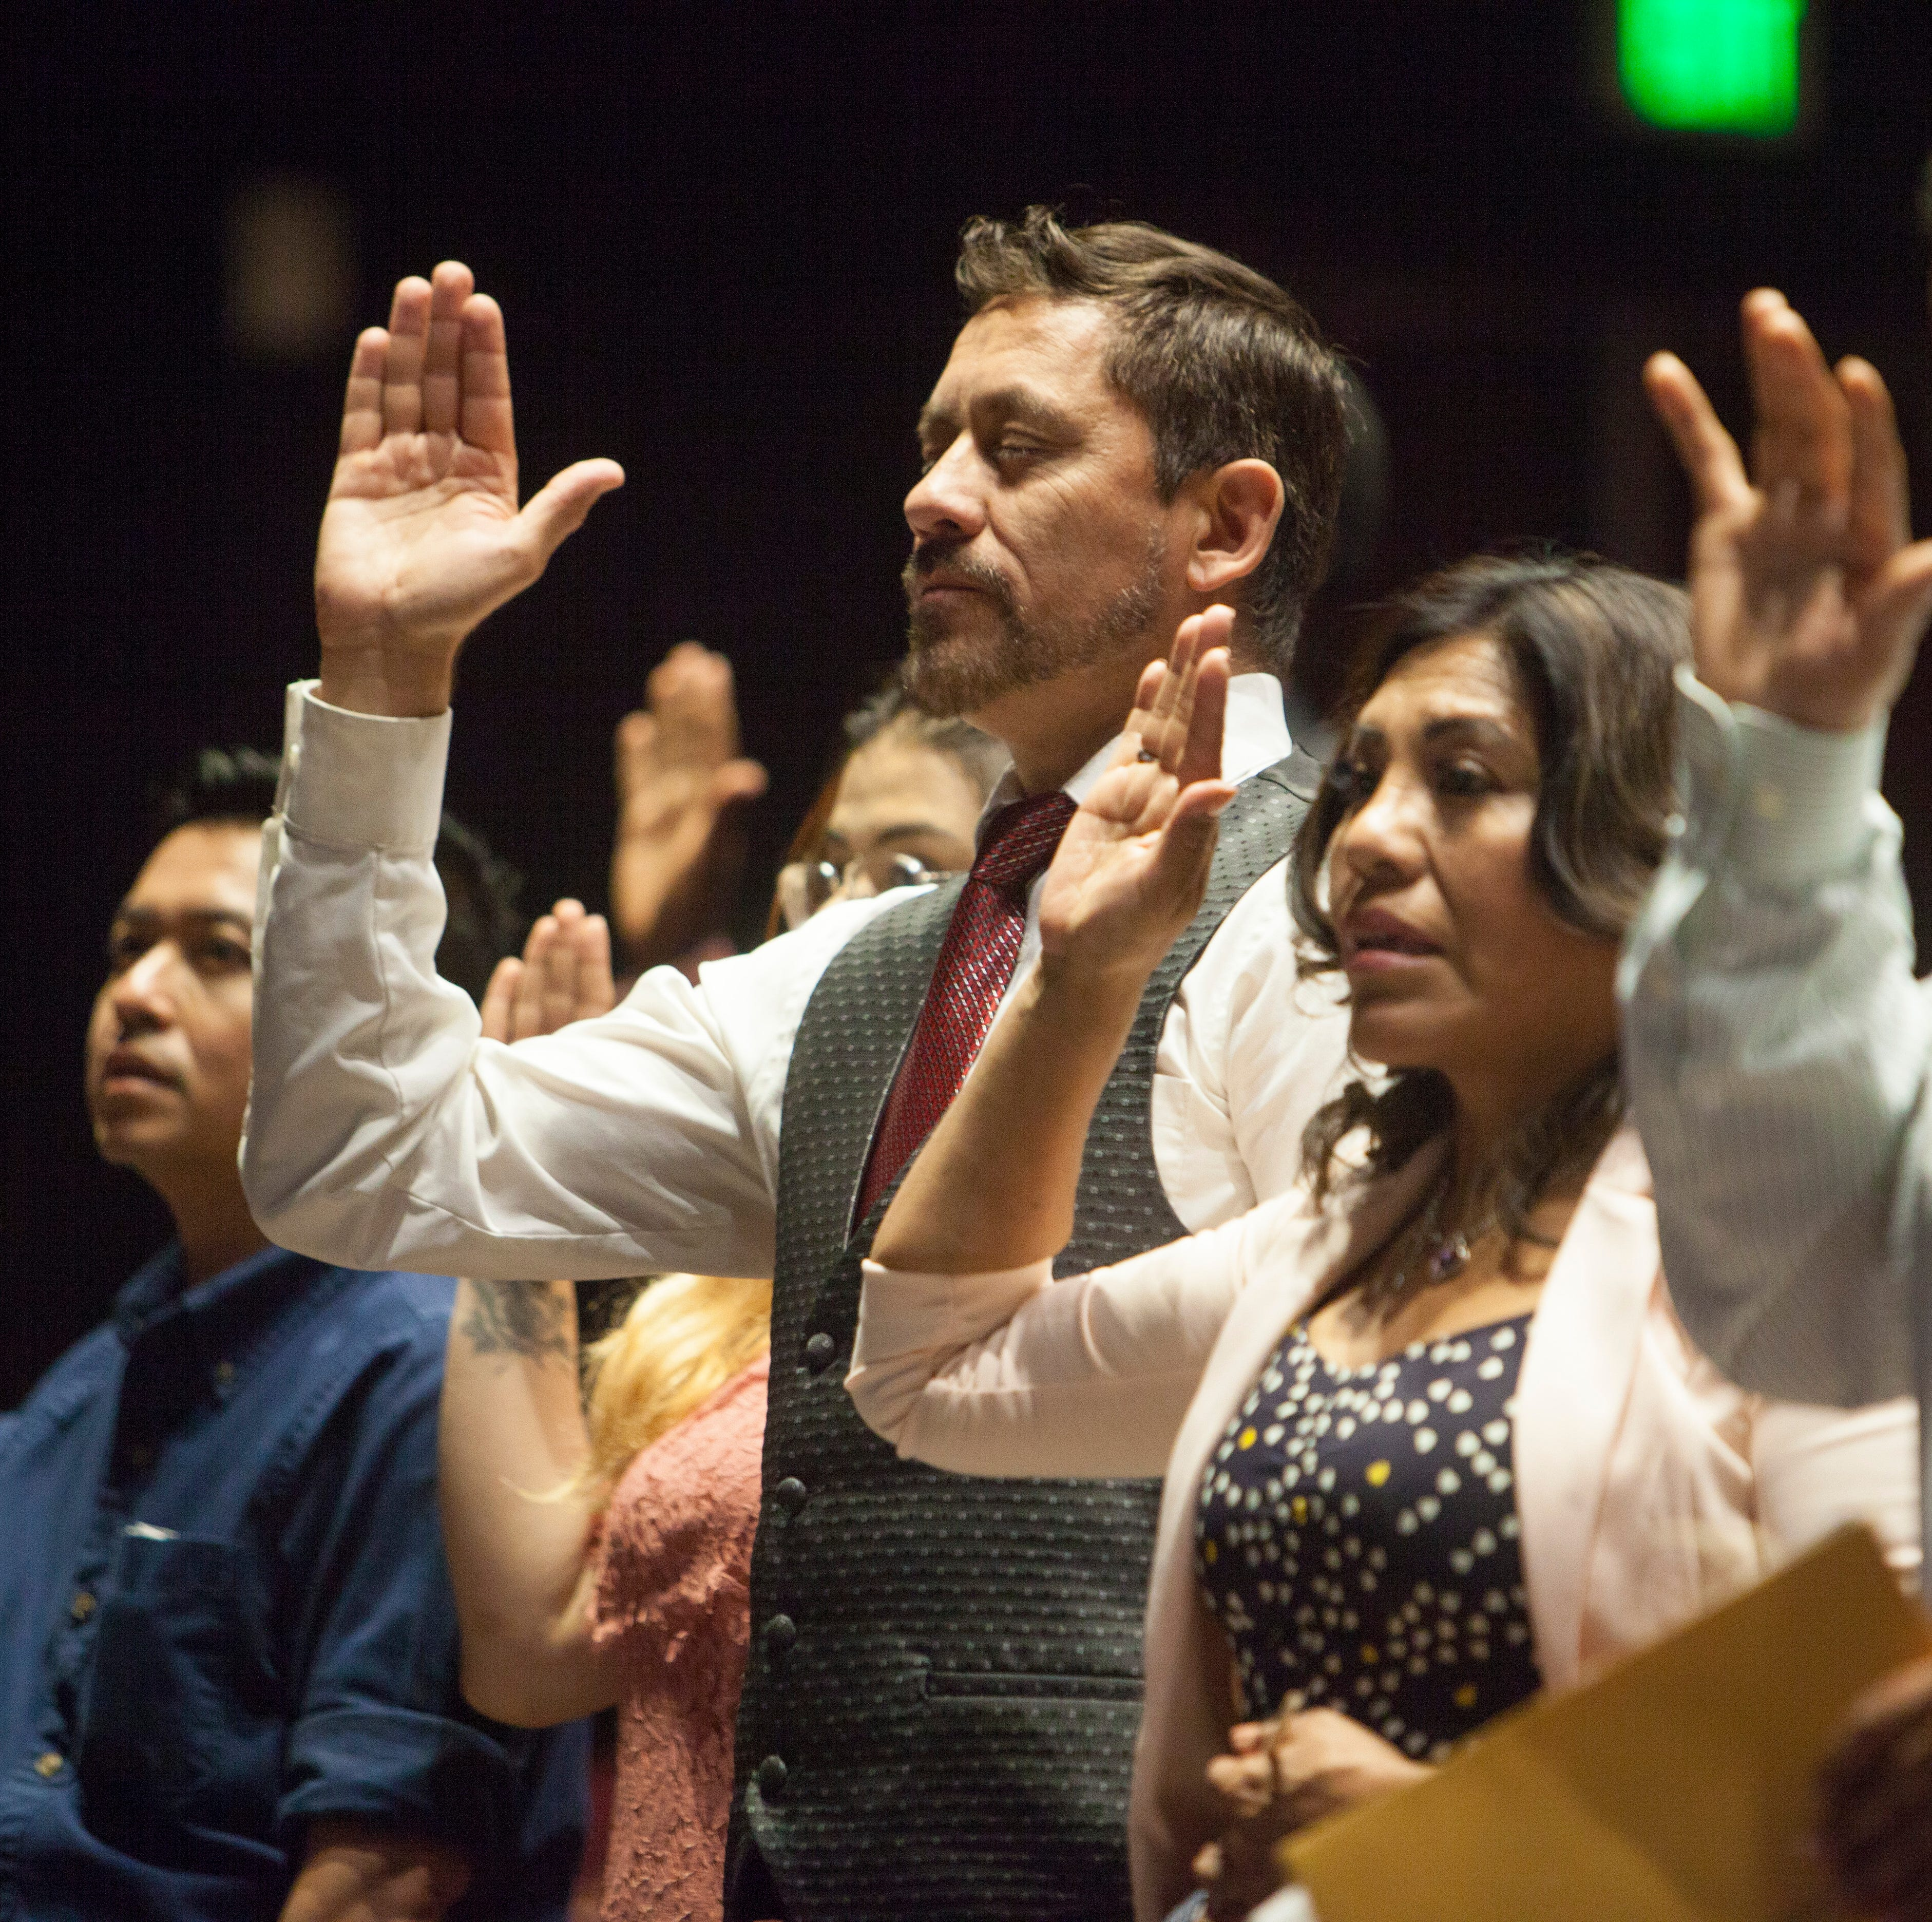 New U.S. citizens sworn in during naturalization ceremony at Dixie State University